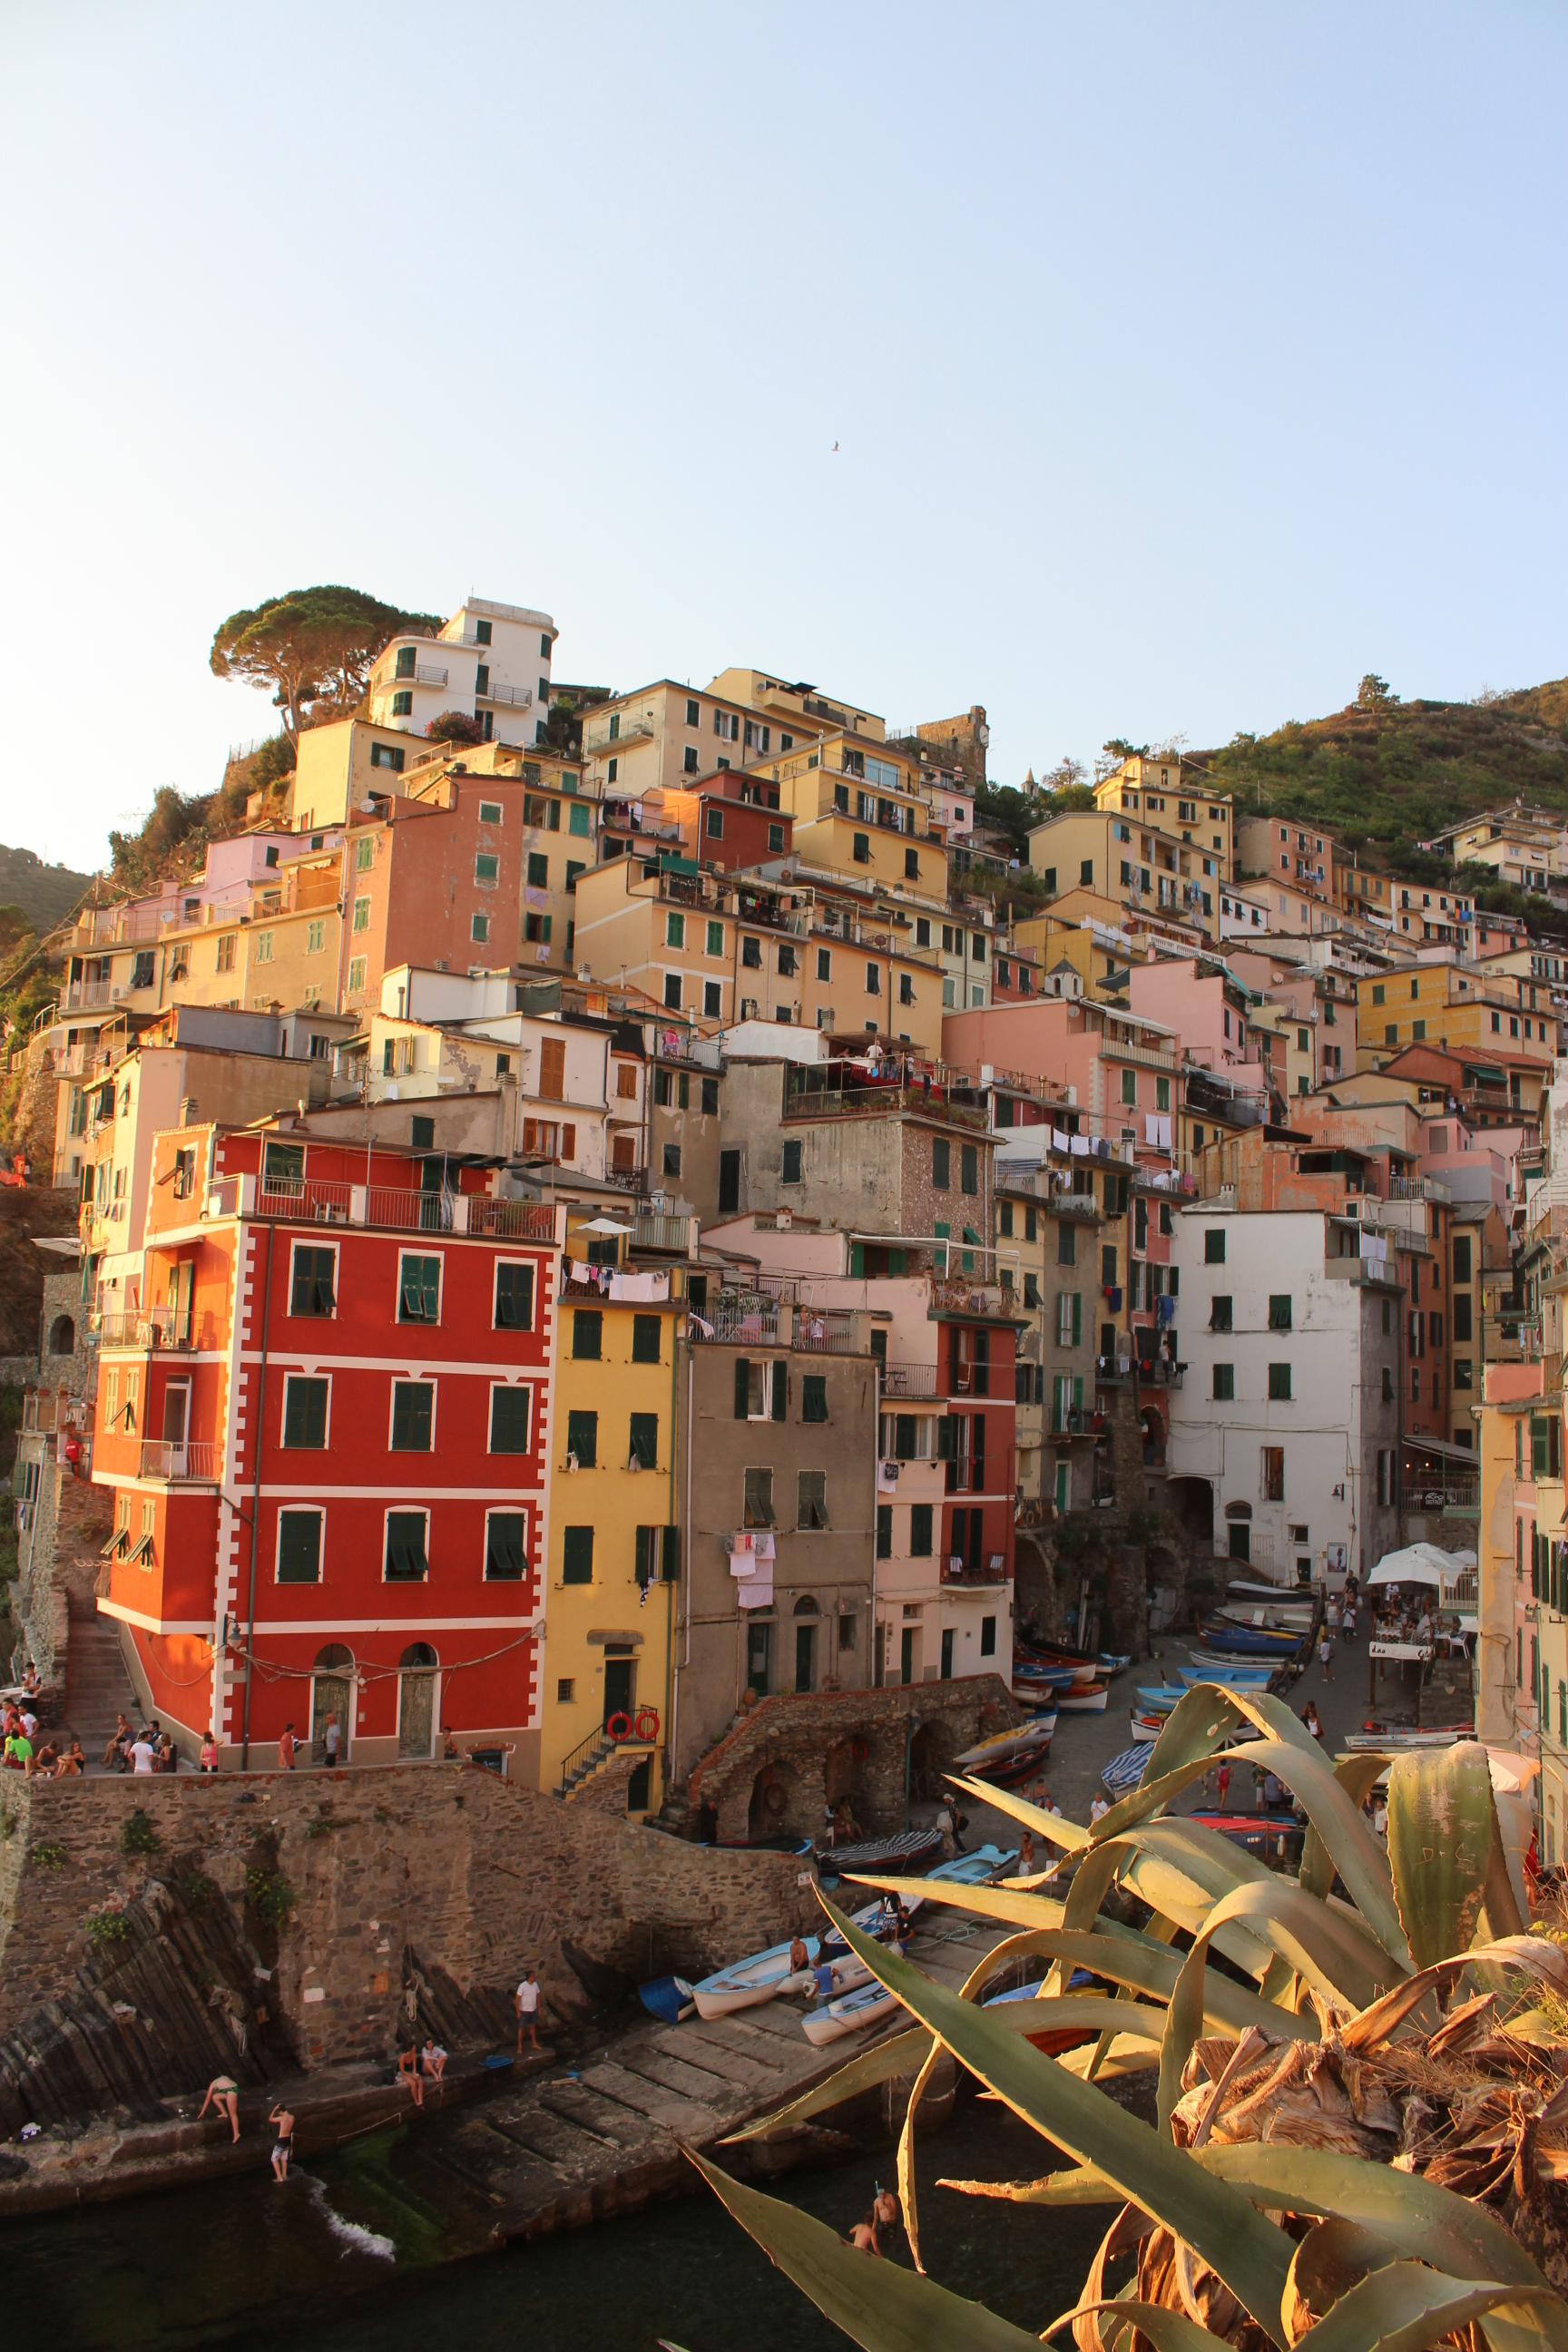 Sugarsheet-Riomaggiore-Cinque-Terre-Italy-Travel-Village-sunset